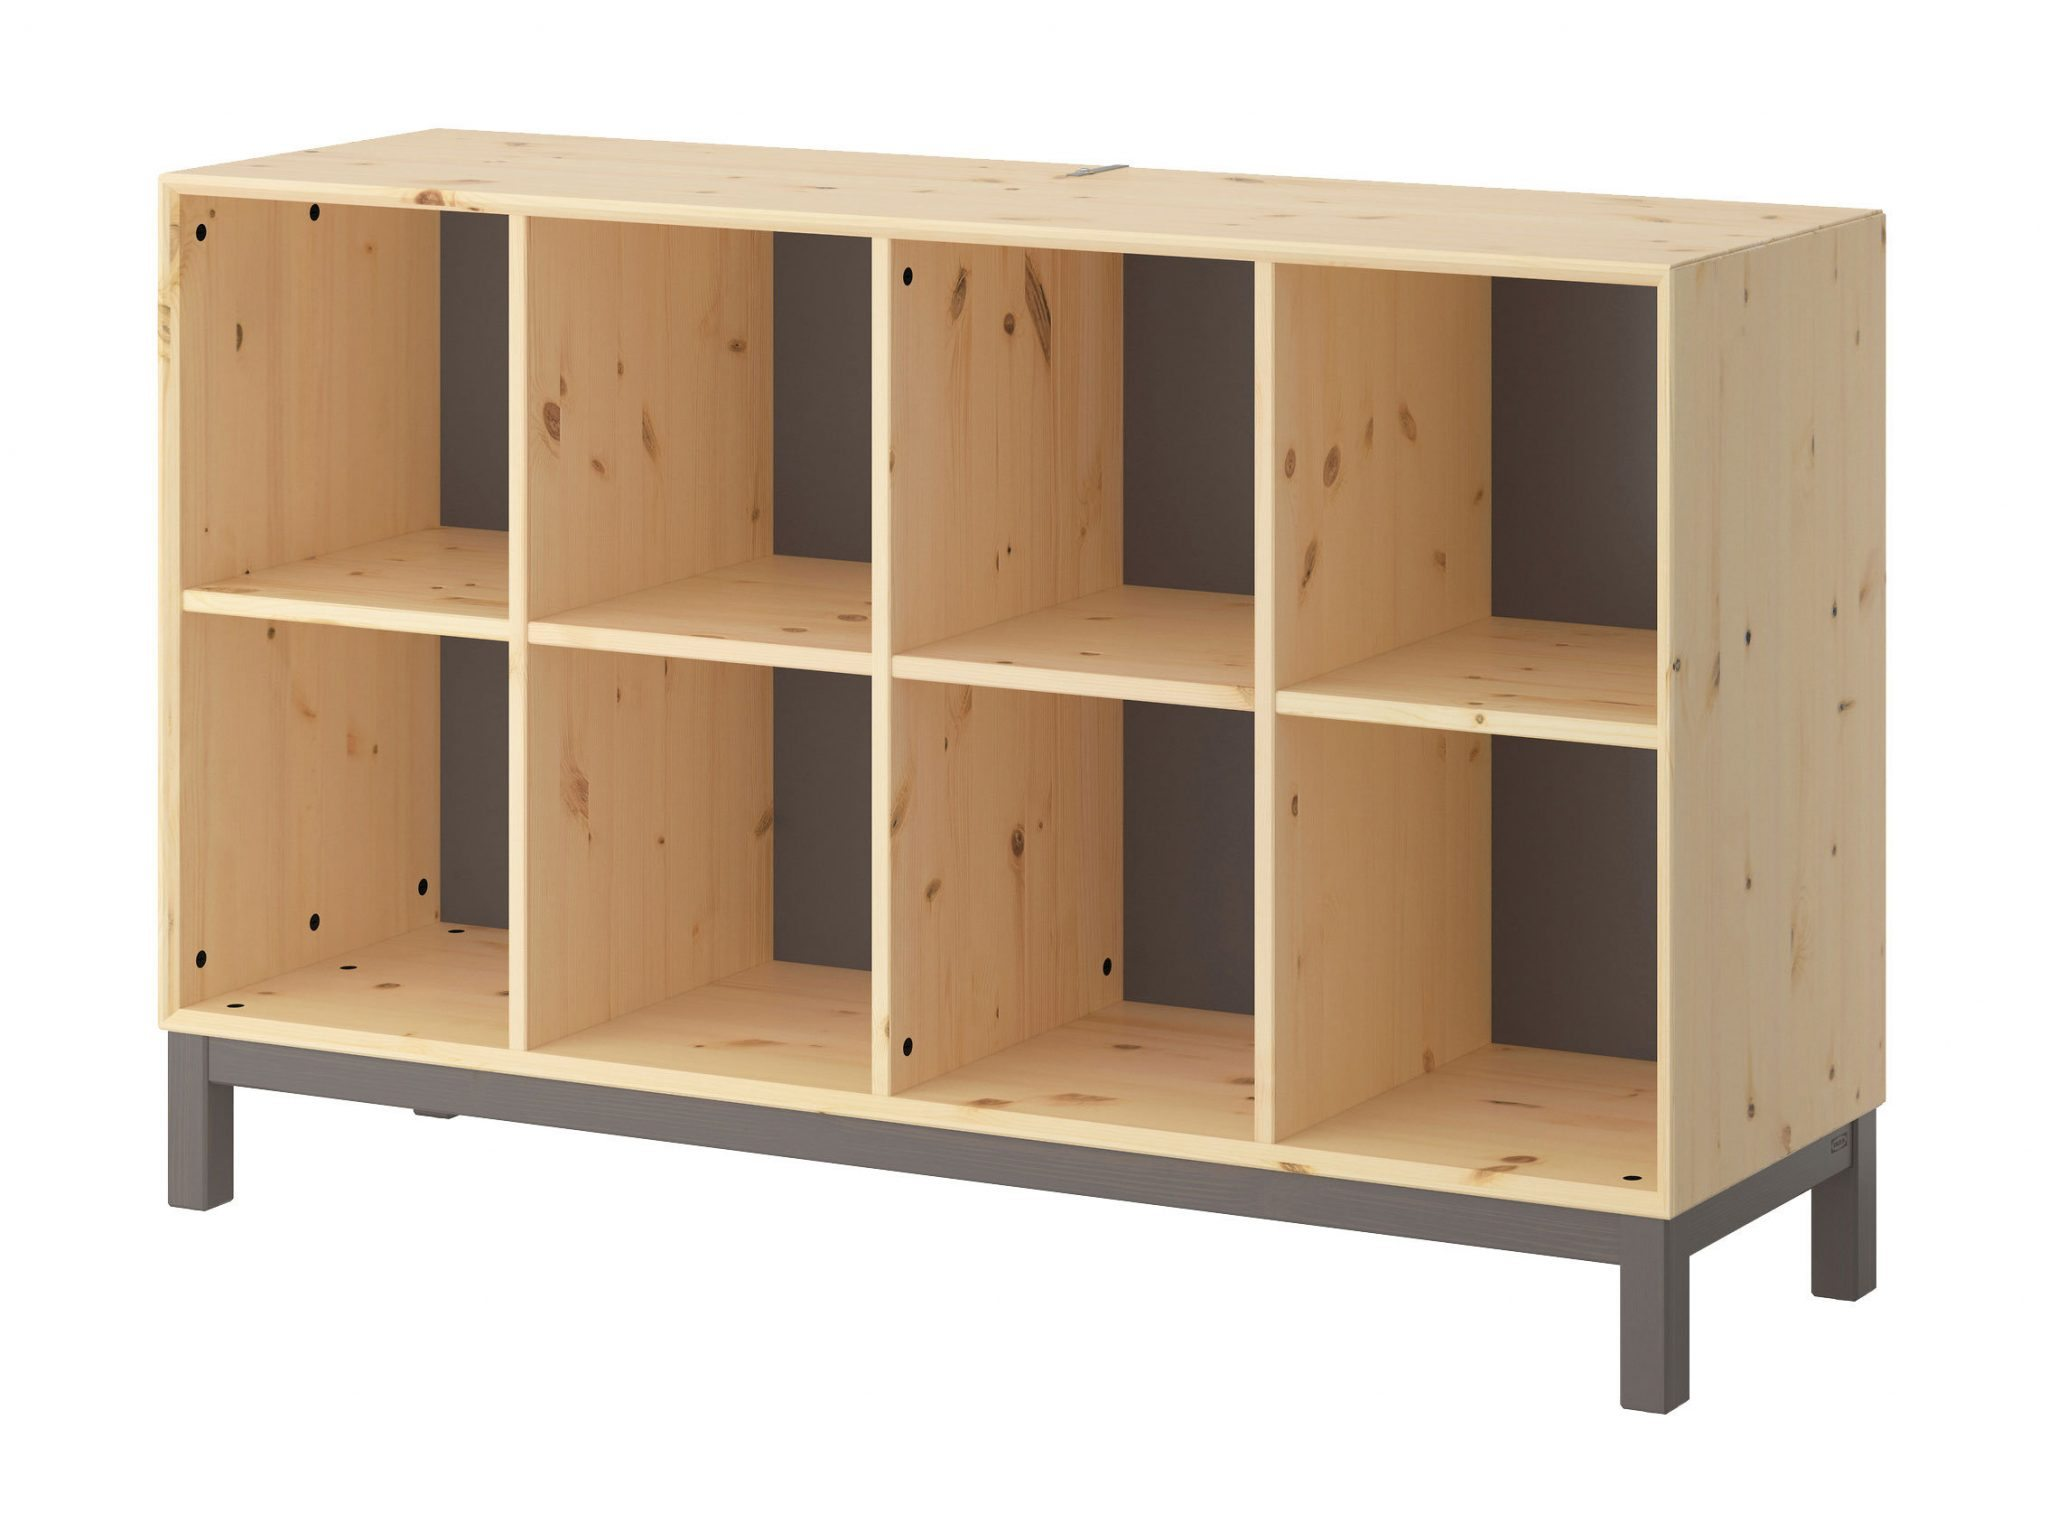 IKEA NORNÄS — the solid wood EXPEDIT alternative for DJs | DJWORX